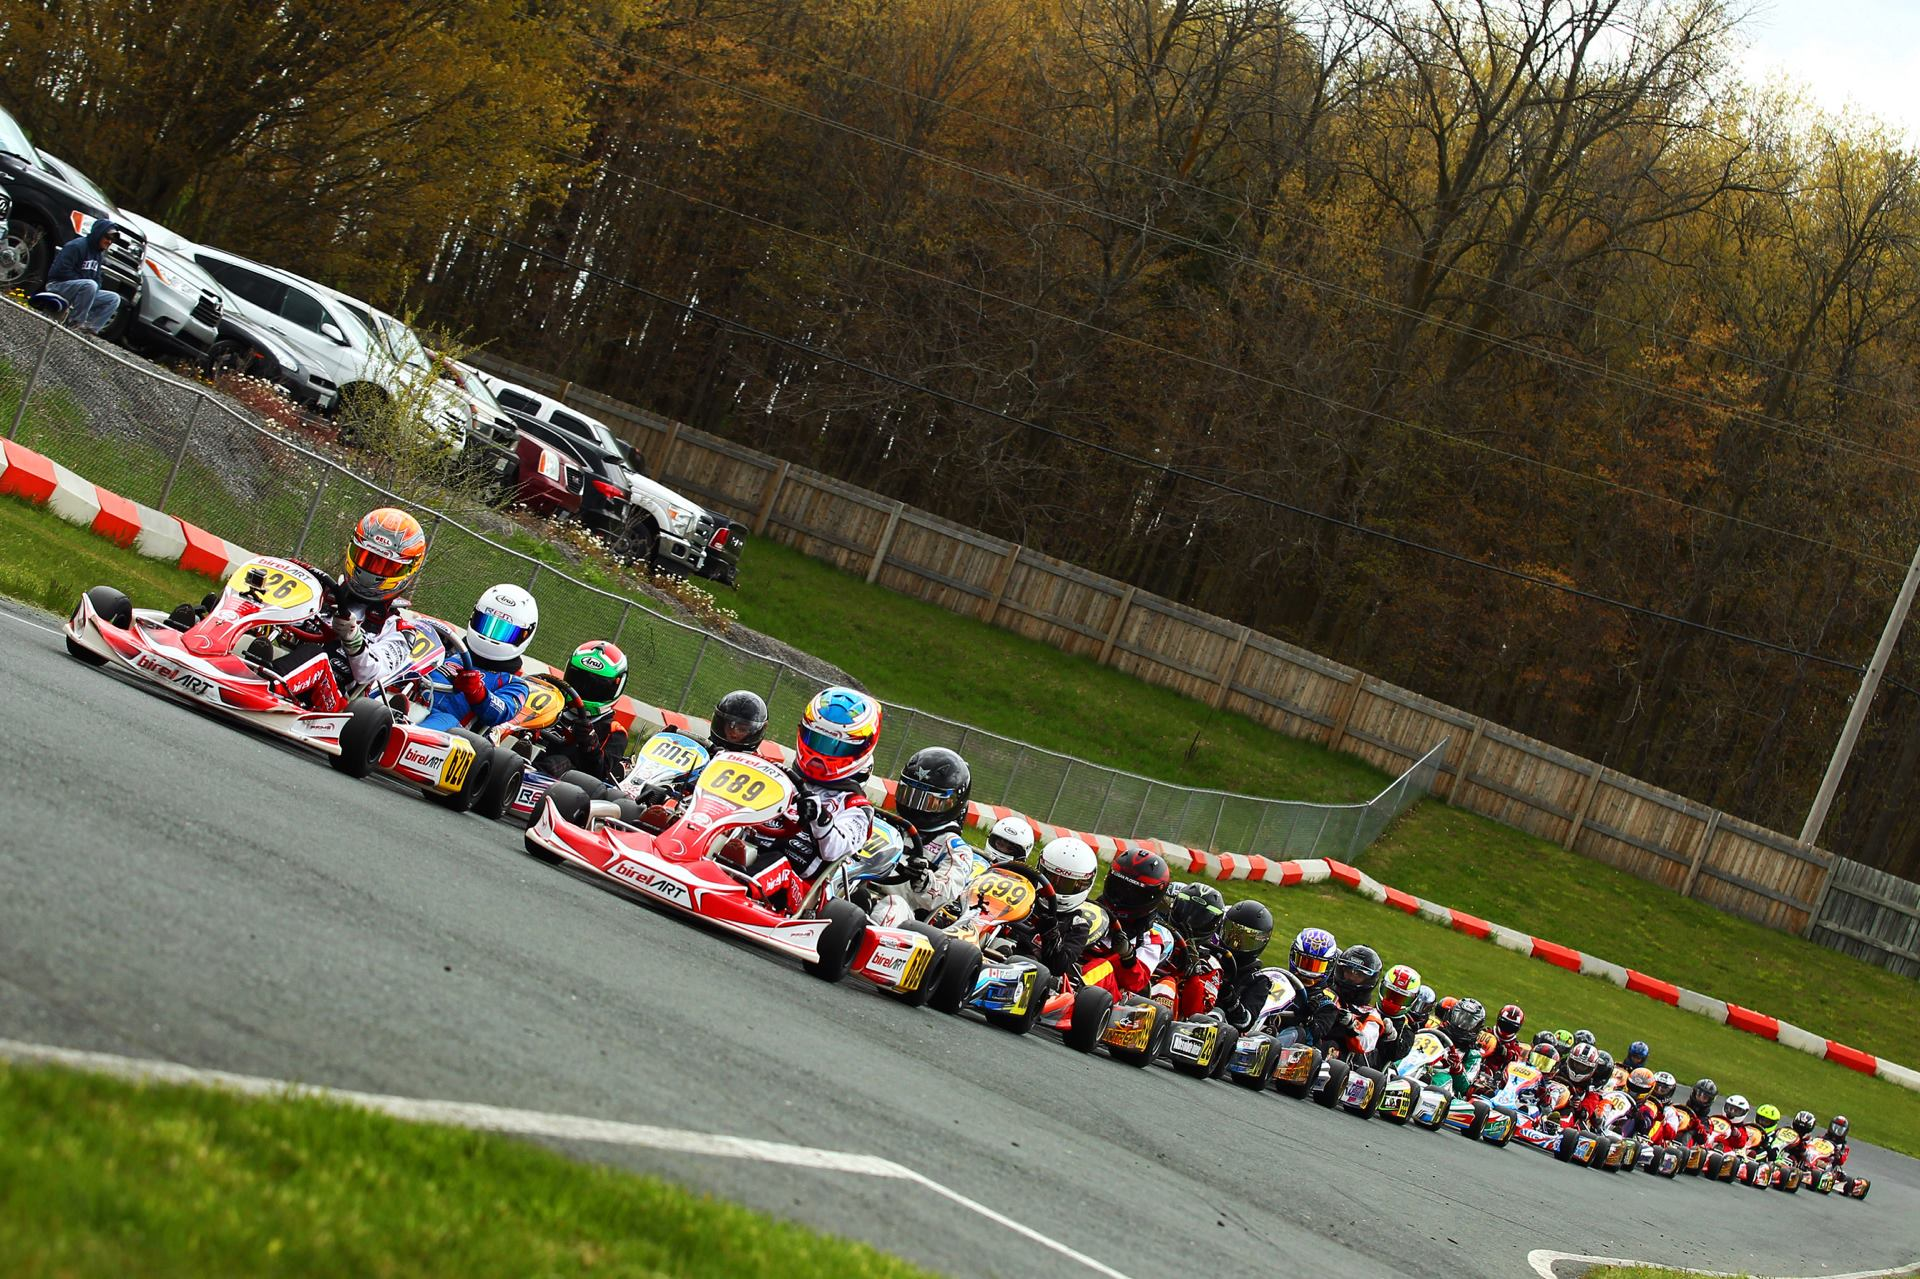 What is WRONG with karting? | News & Blog | Briggs Racing